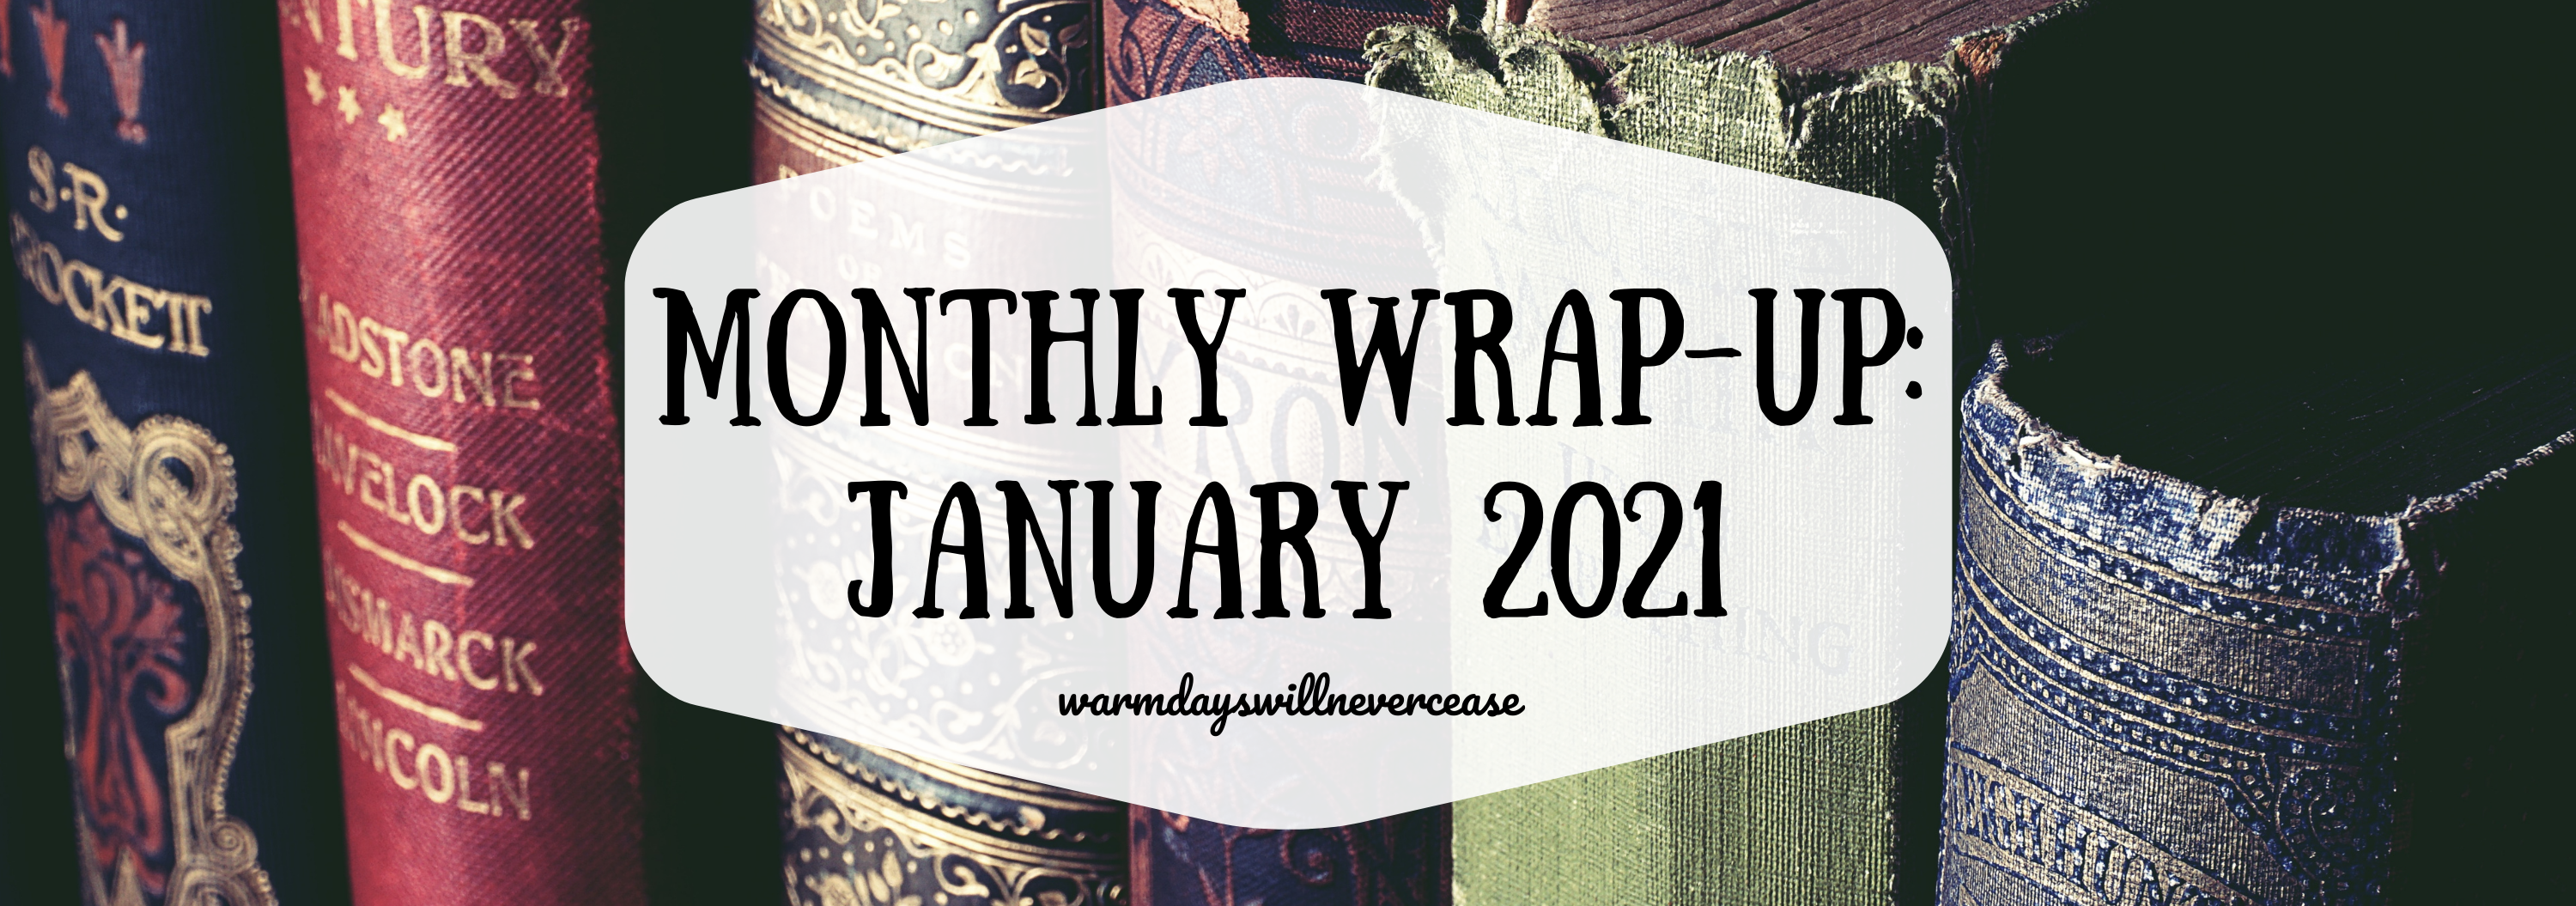 Jan 2021 Monthly Wrap Up